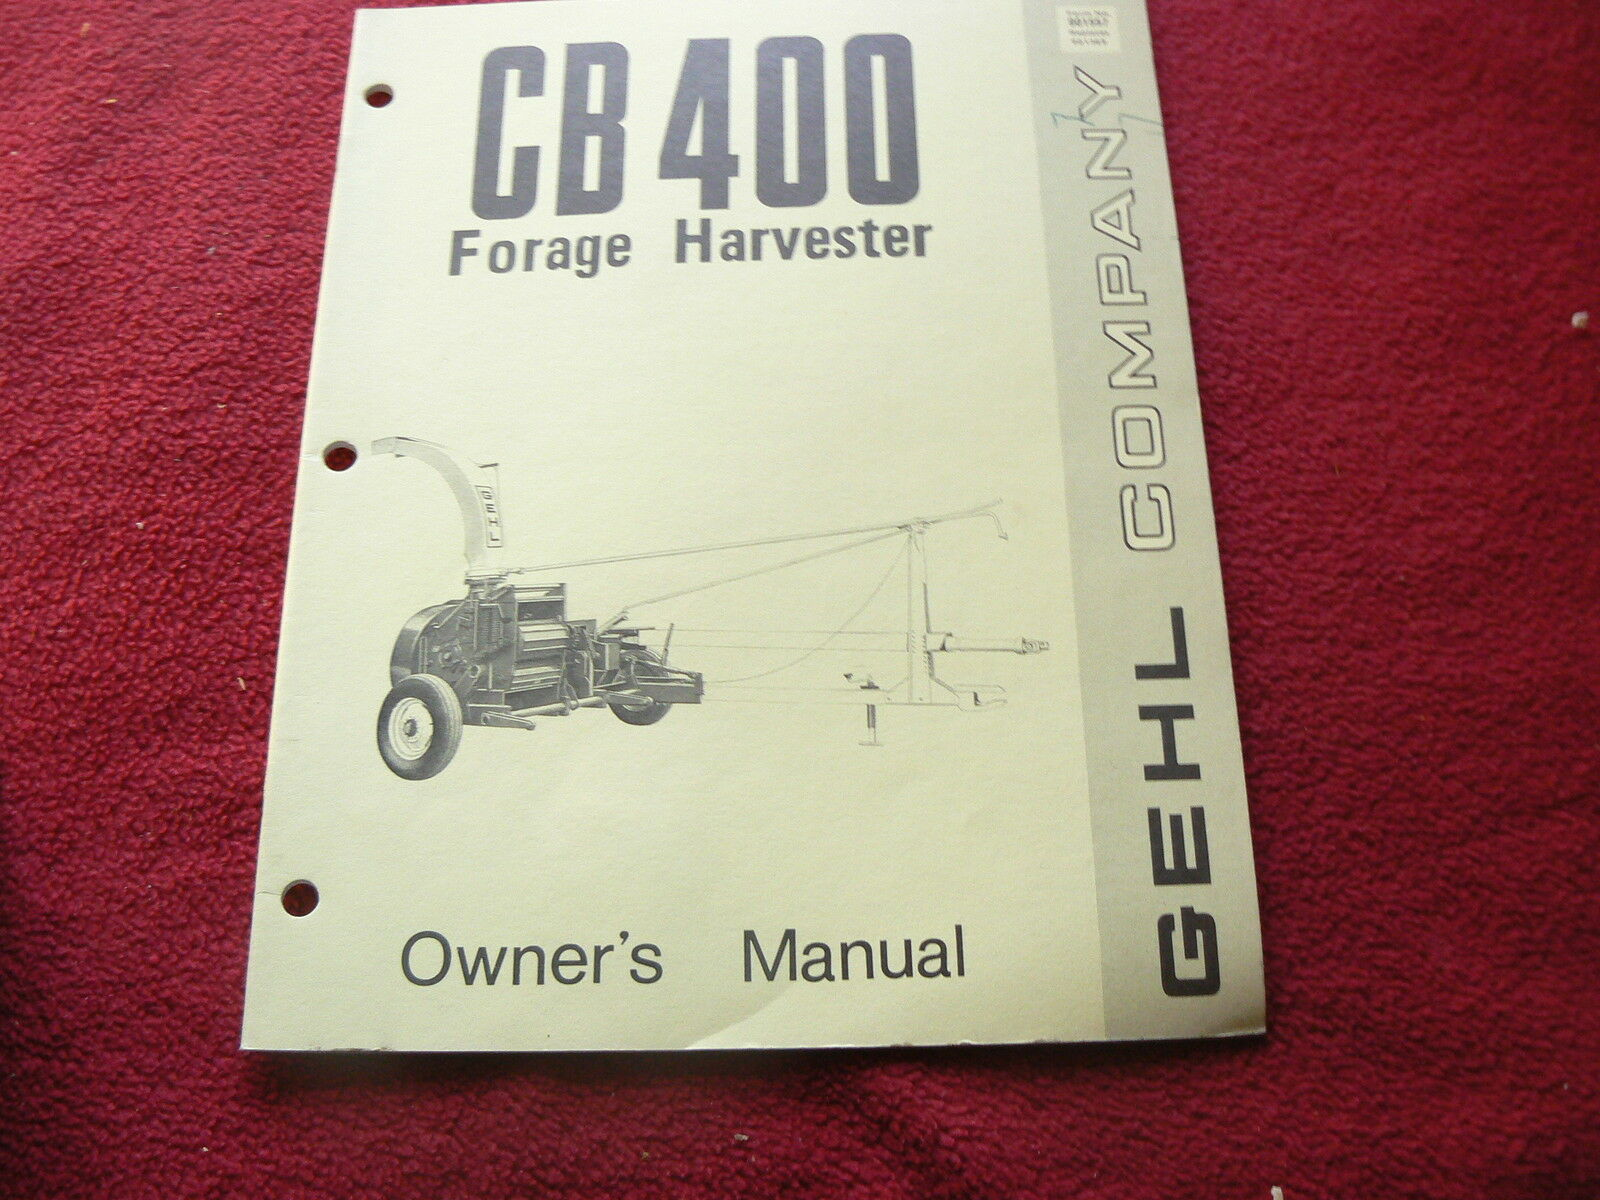 Gehl CB 400 Forage Harvester Operator's Manual 1 of 1Only 1 available .